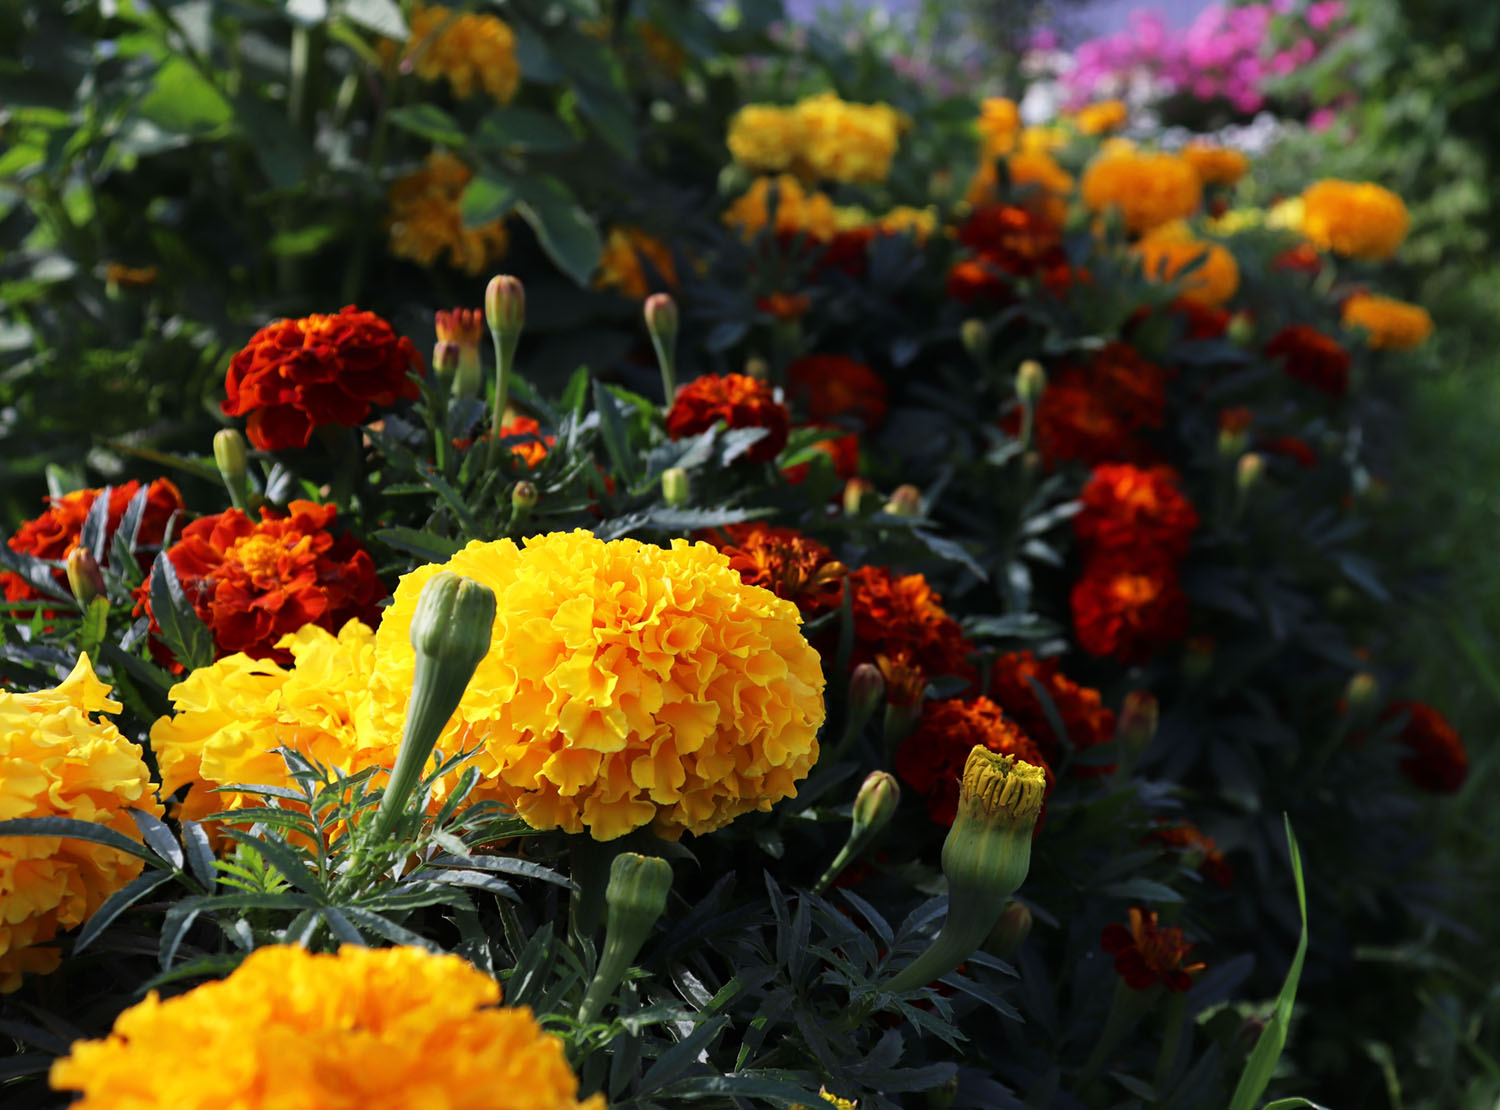 garden border of yellow and burnt-orange blooming French marigolds, the low-growing type of marigolds